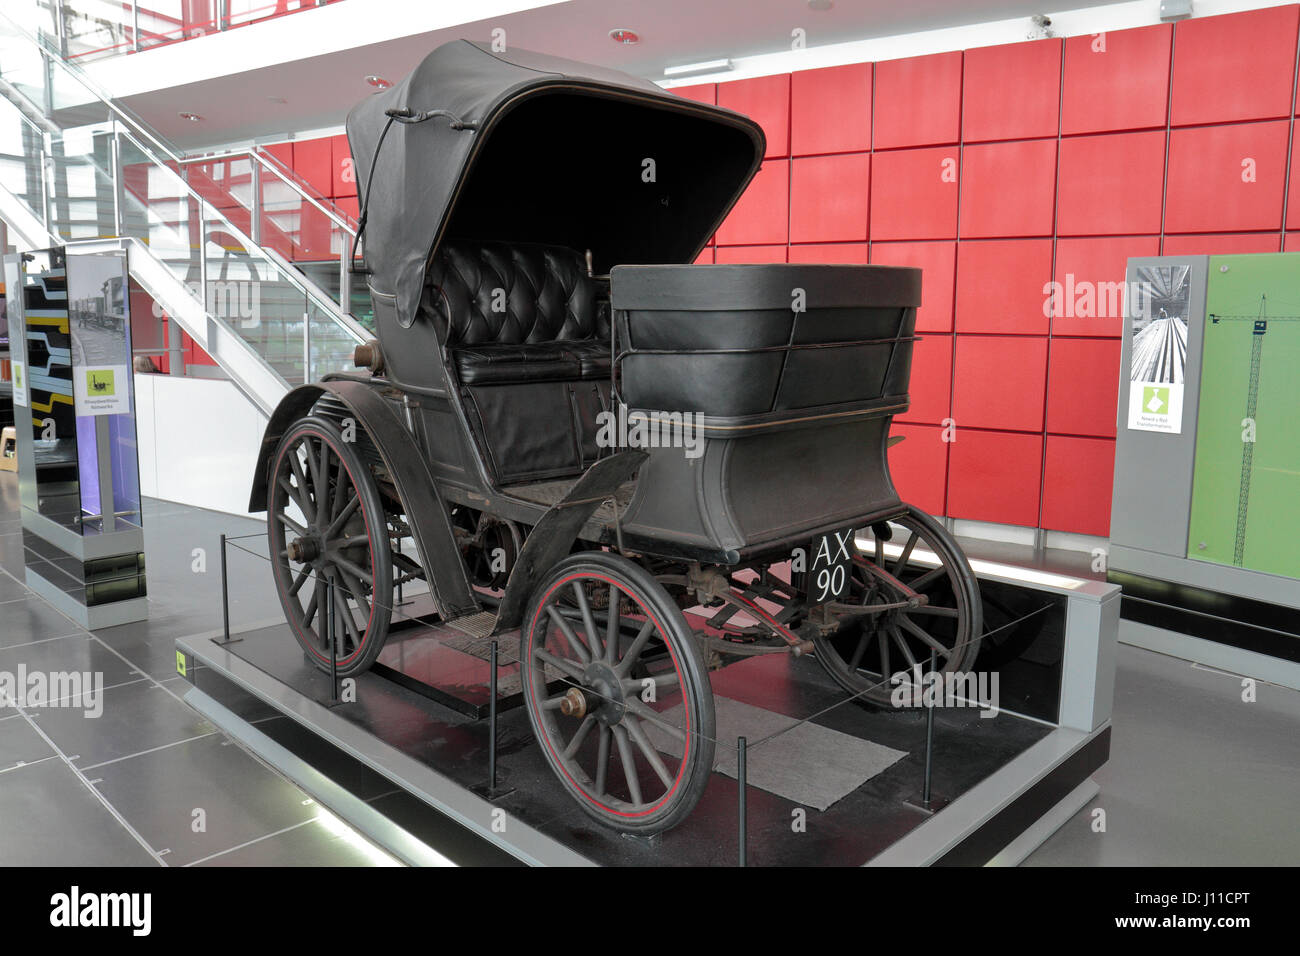 A Benz 'Duc' motor car on display in the National Waterfront Museum, Swansea, Wales. - Stock Image